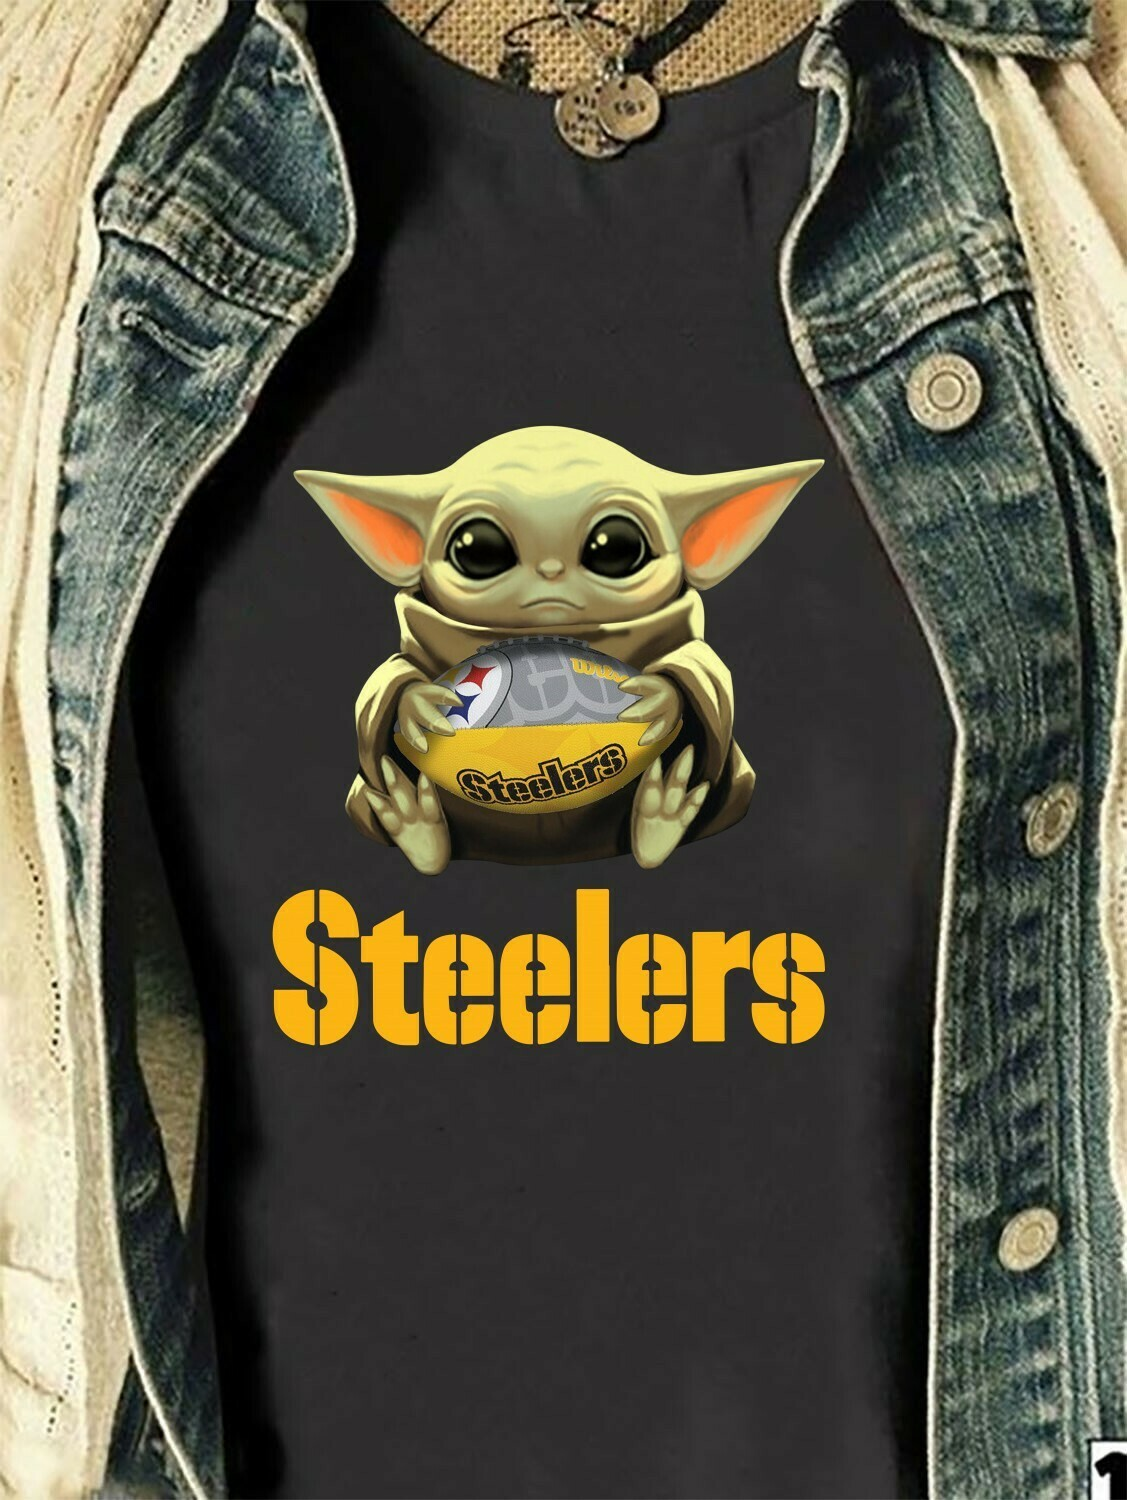 Pittsburgh Steelers Baby Yoda Star Wars The Mandalorian The Child First Memories Floating NFL Football Team Dad Mon Kid Fan Gift T-Shirt Long Sleeve Sweatshirt Hoodie Jolly Family Gifts